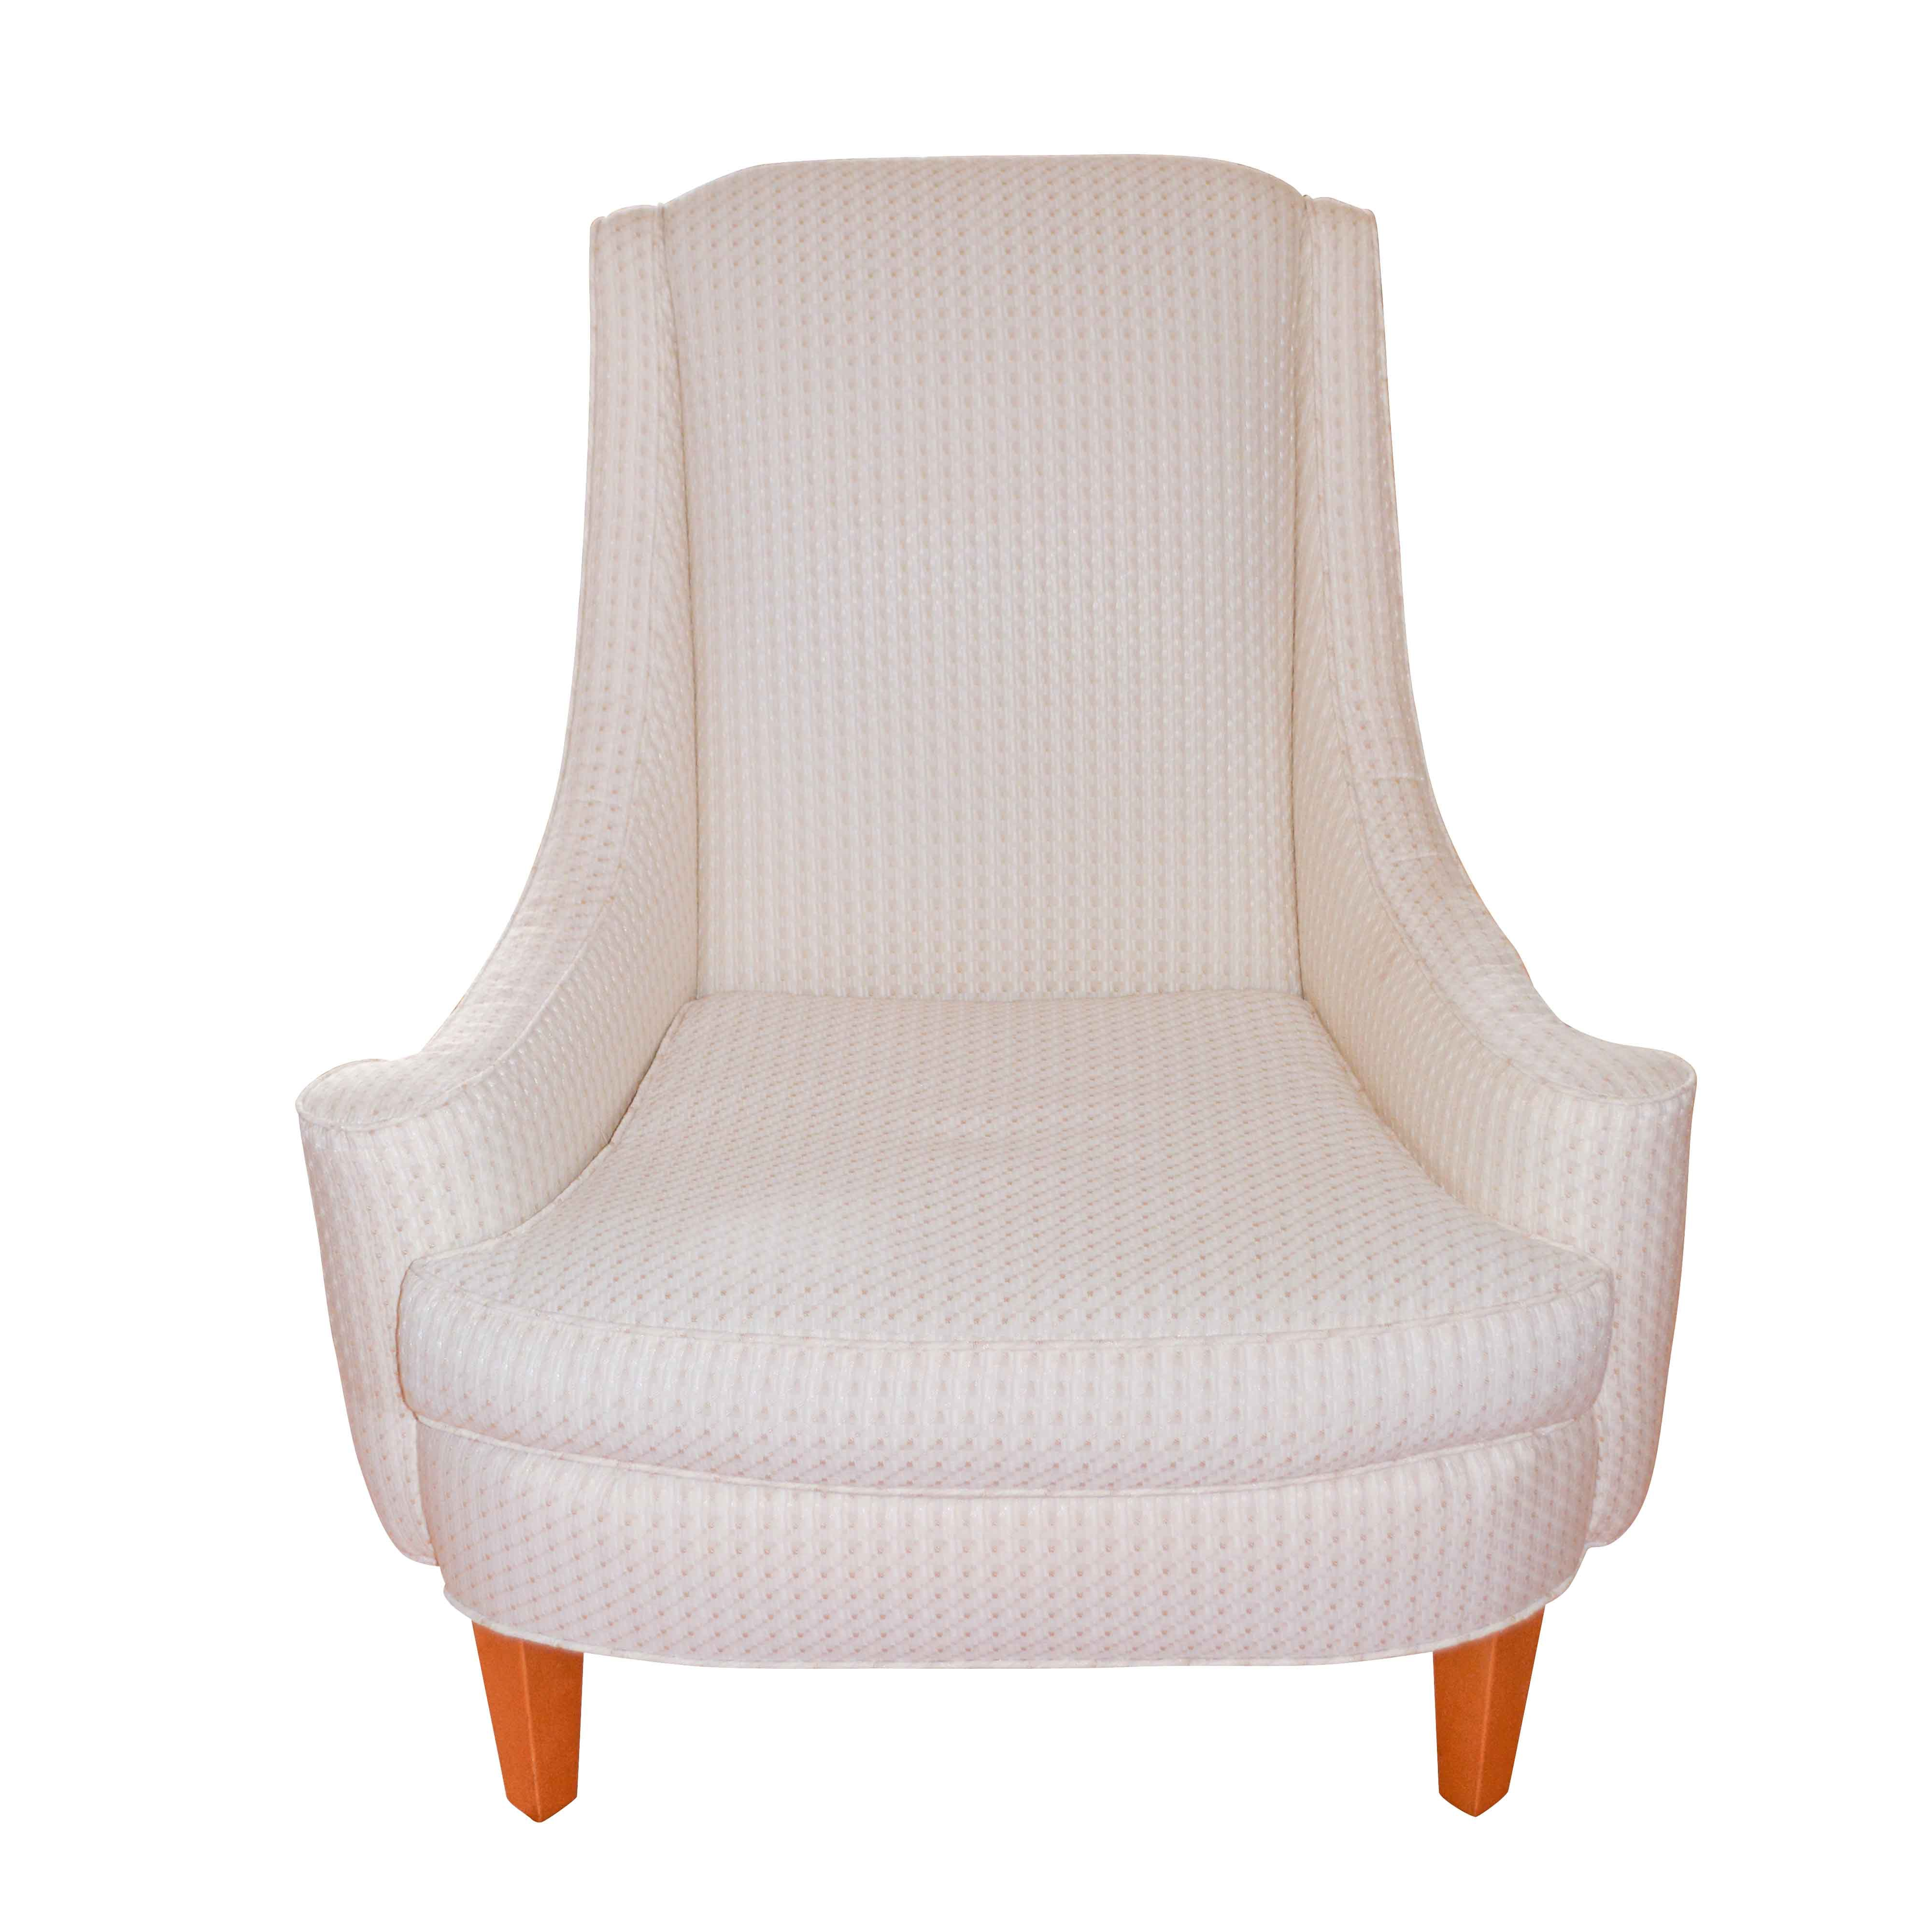 Upholstered Lounge Chair by Spicer's